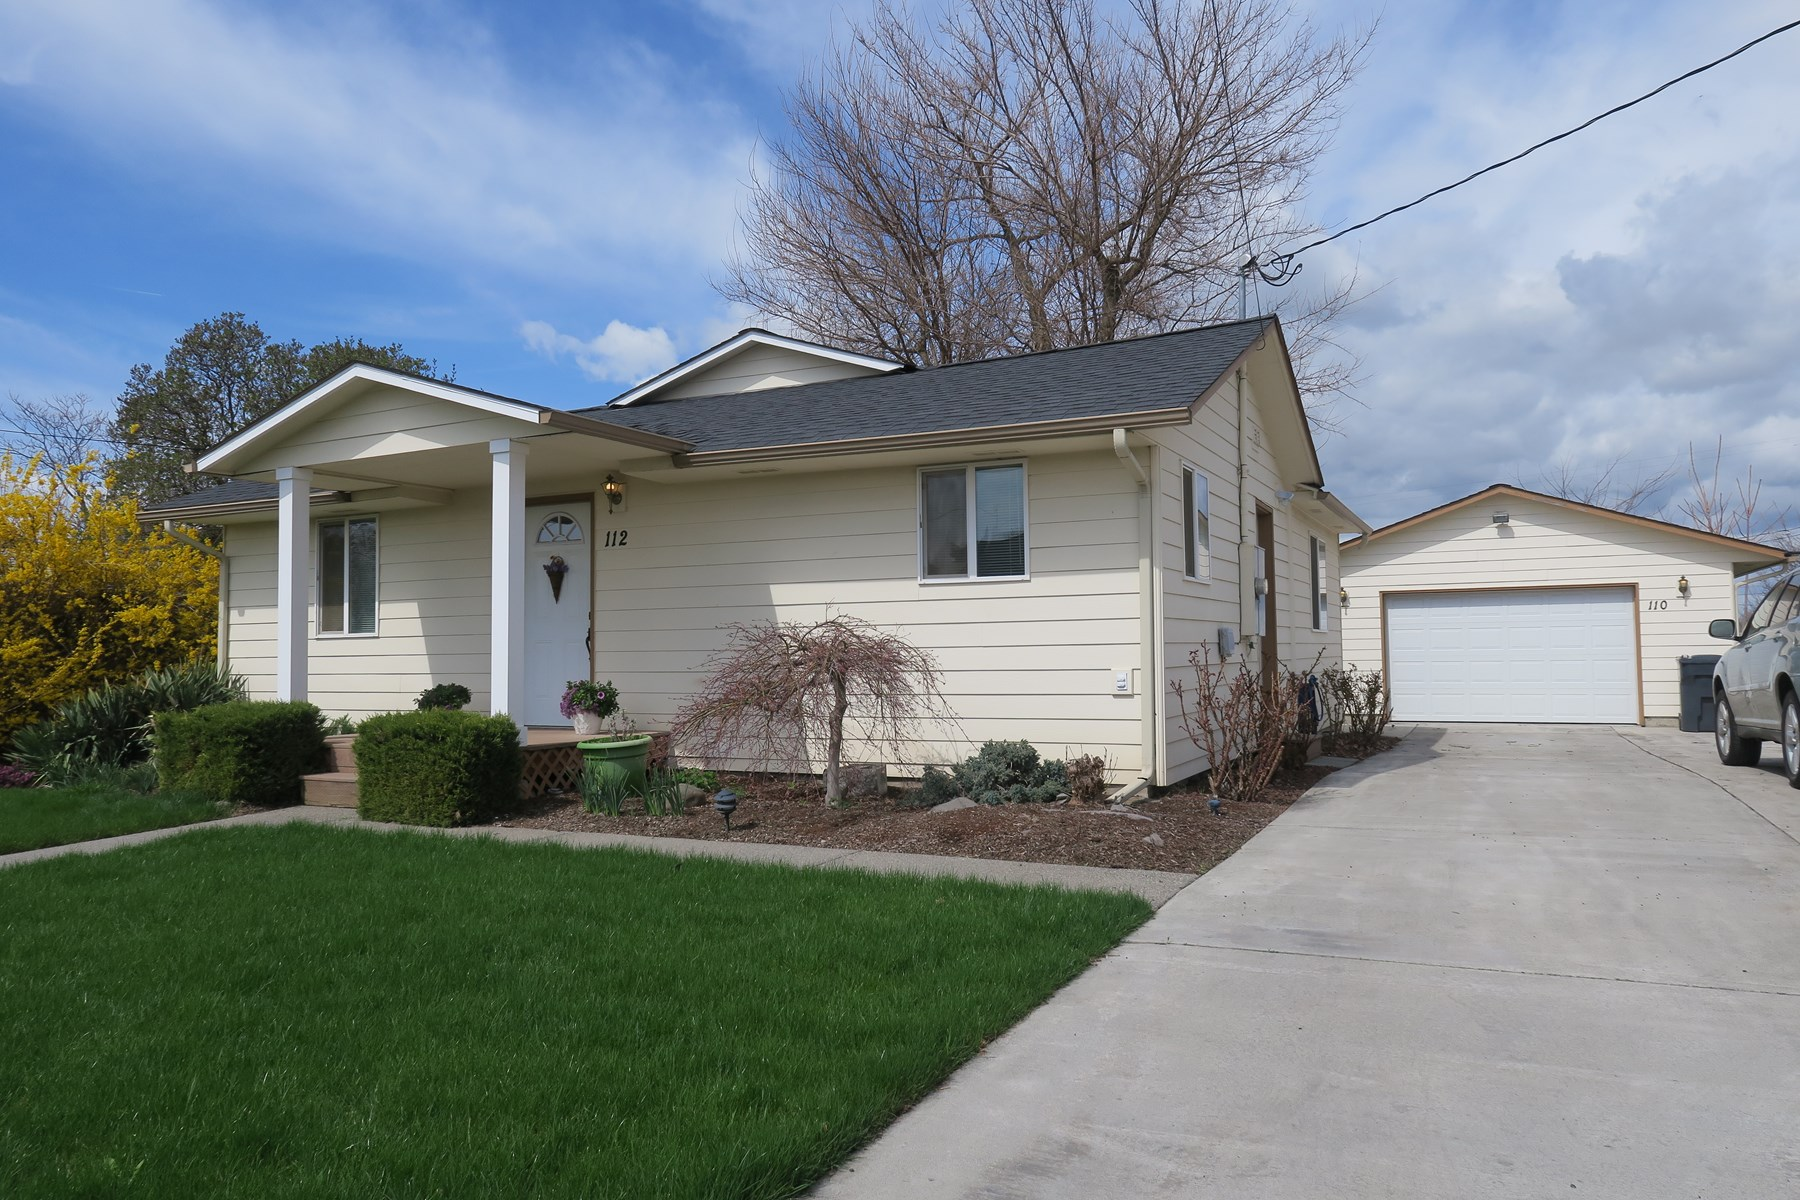 College Place WA Duplex For Sale Near Walla Walla University